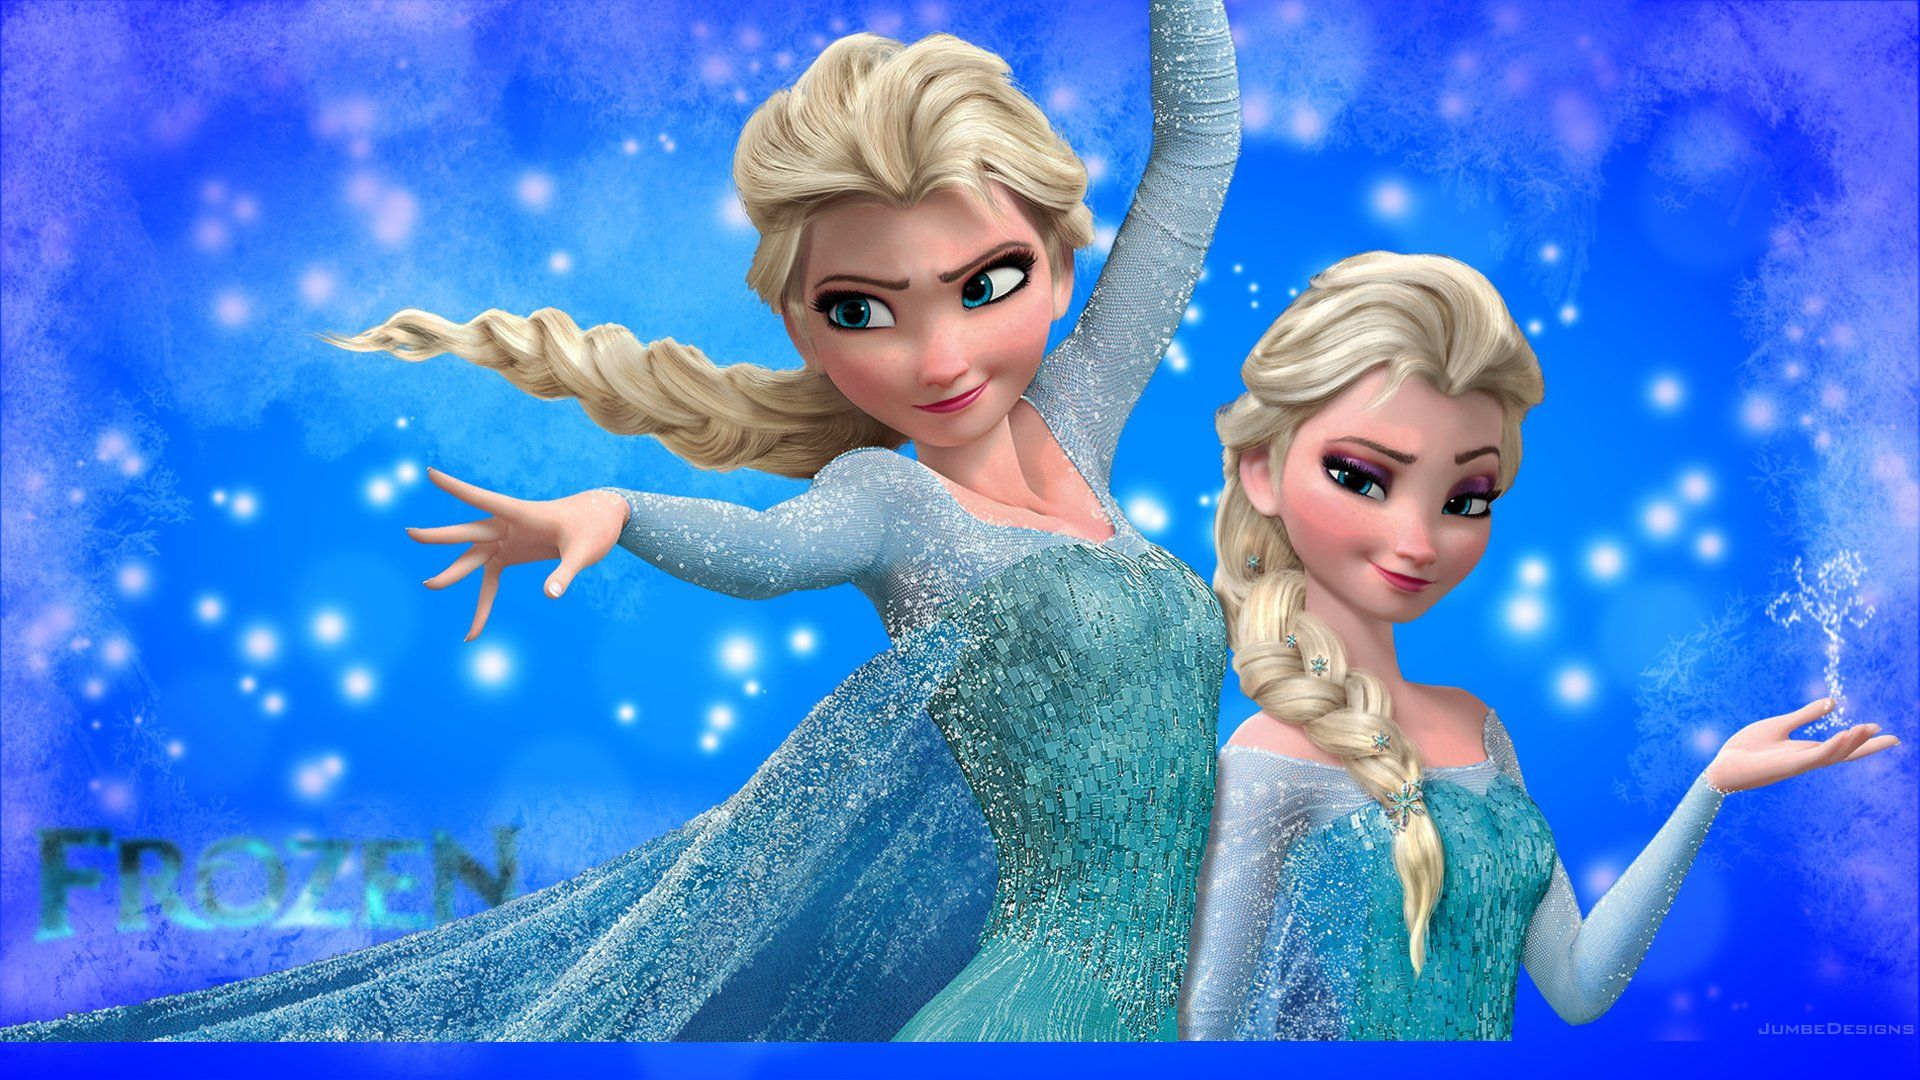 hd disney frozen wallpapers for mobile phone x | hd wallpapers